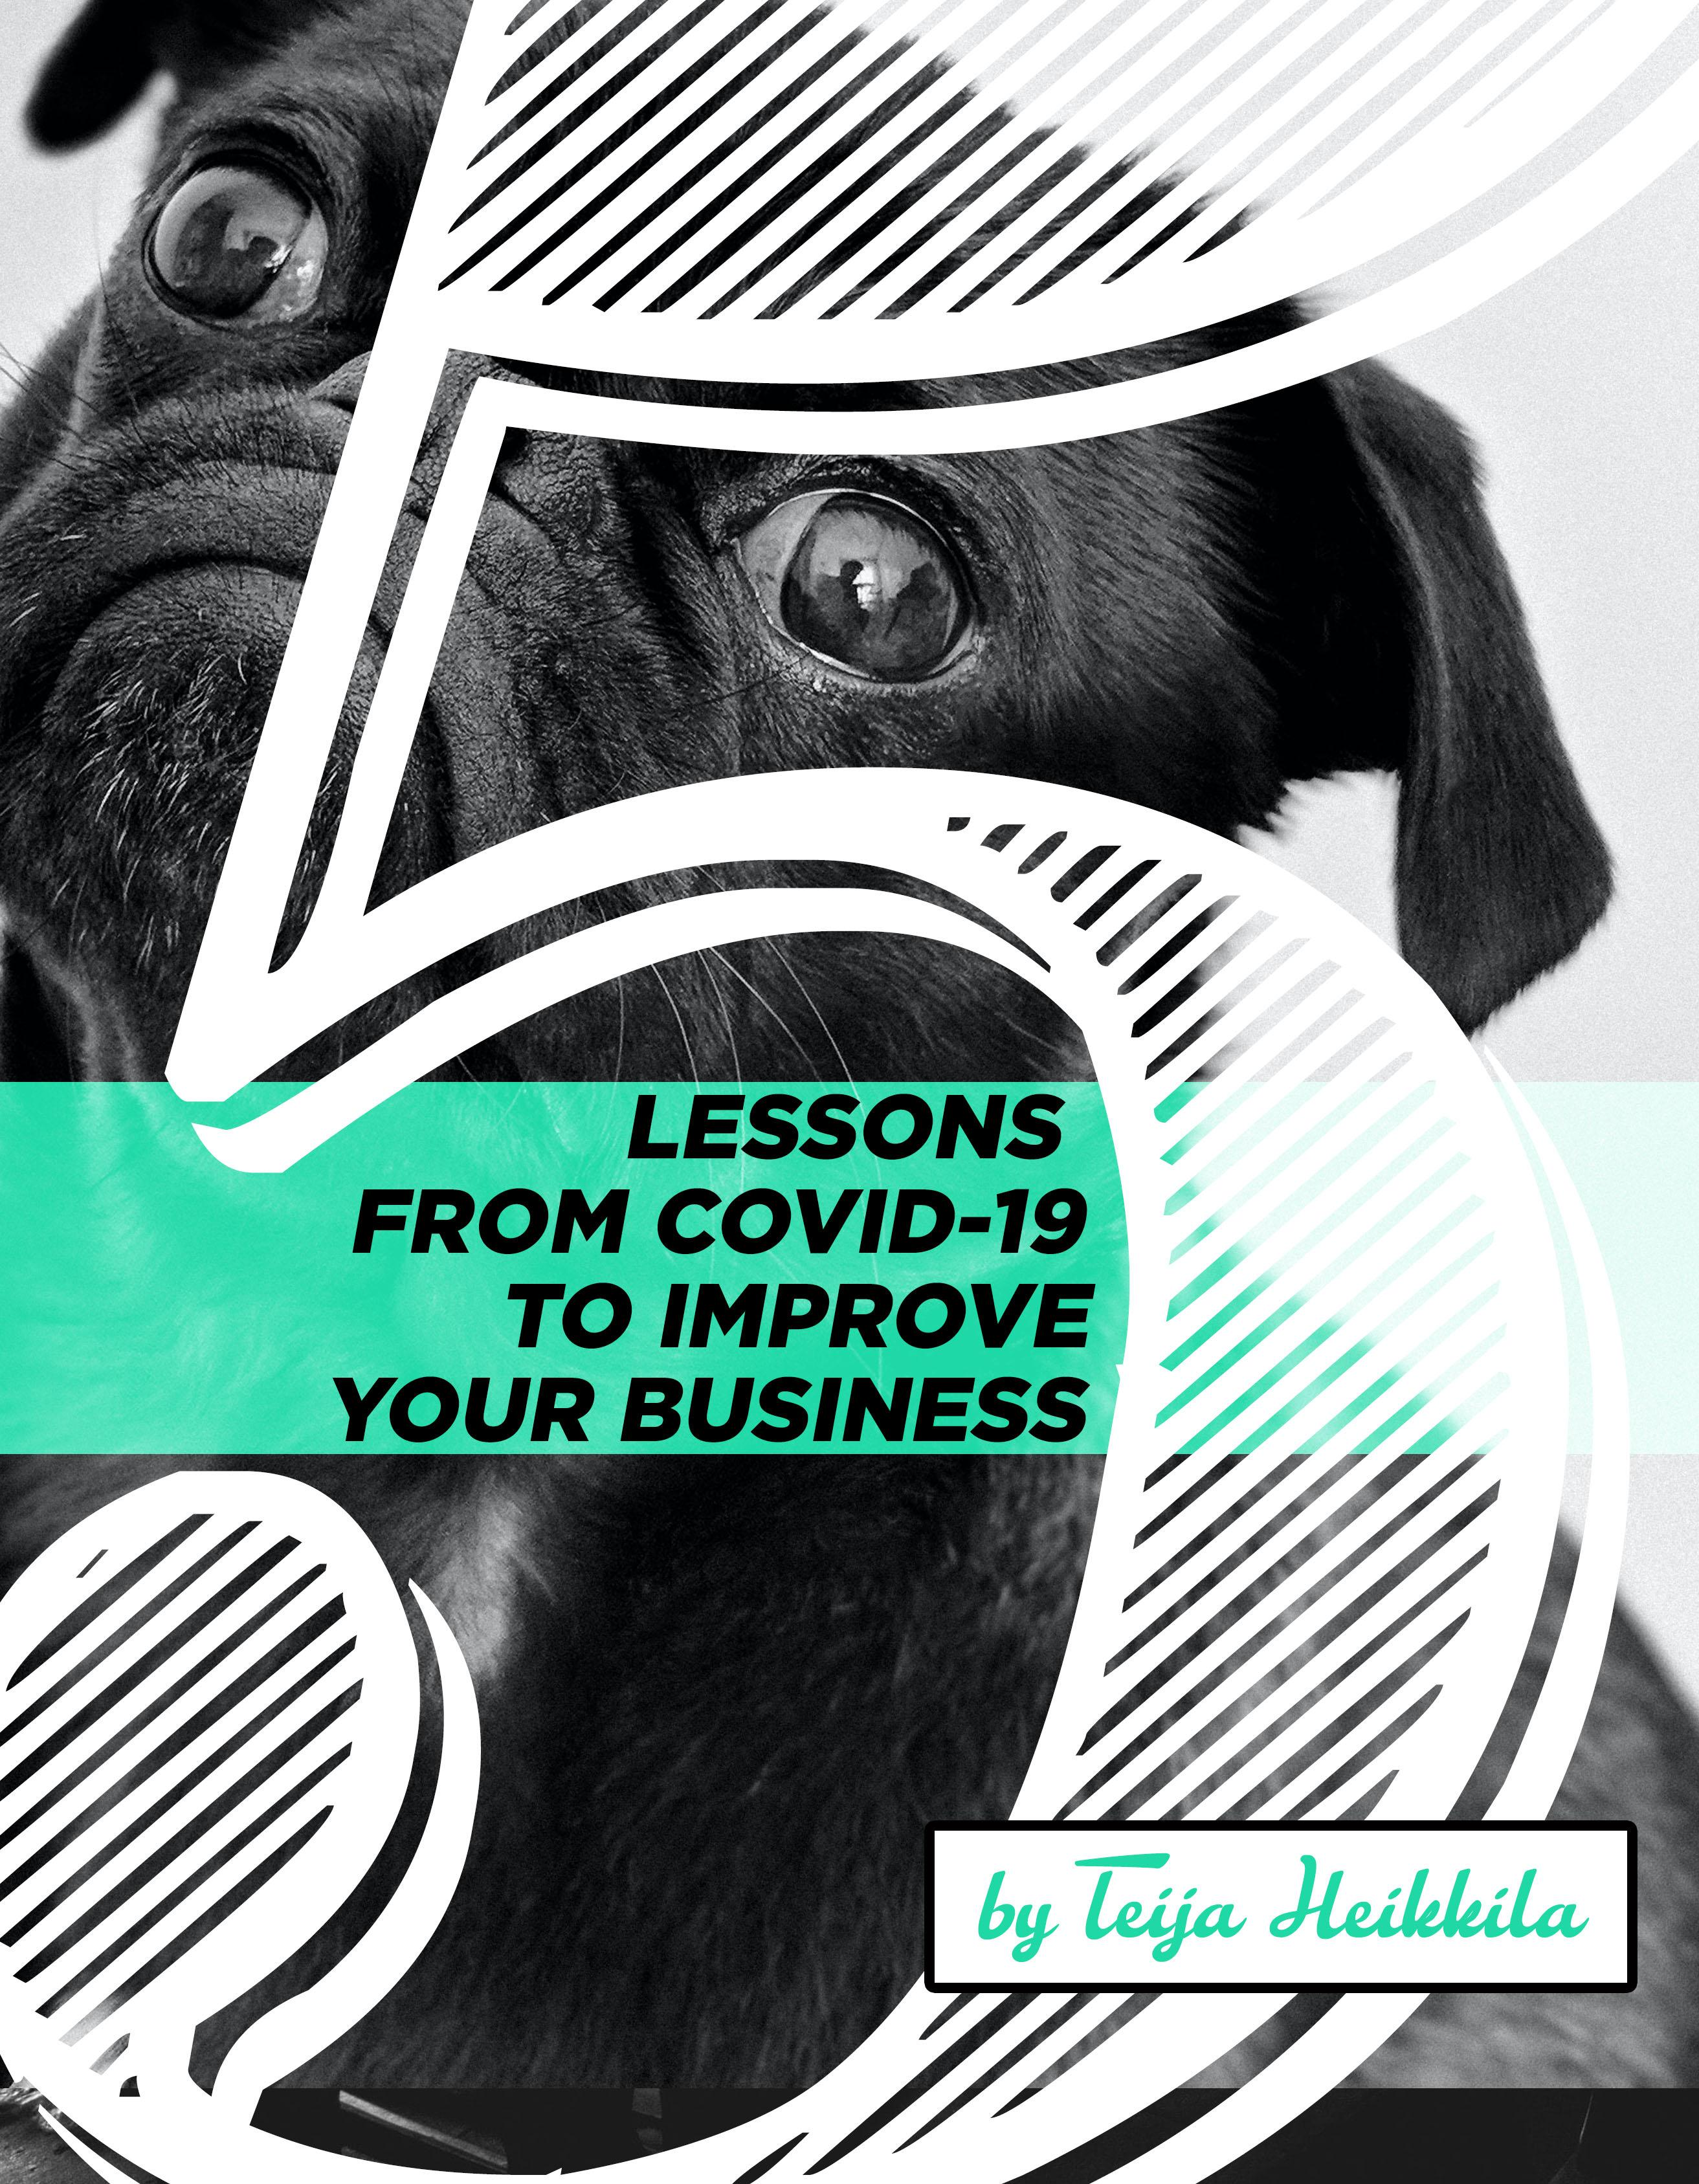 Page 16 of 5 LESSONS FROM COVID-19 TO IMPROVE YOUR BUSINESS